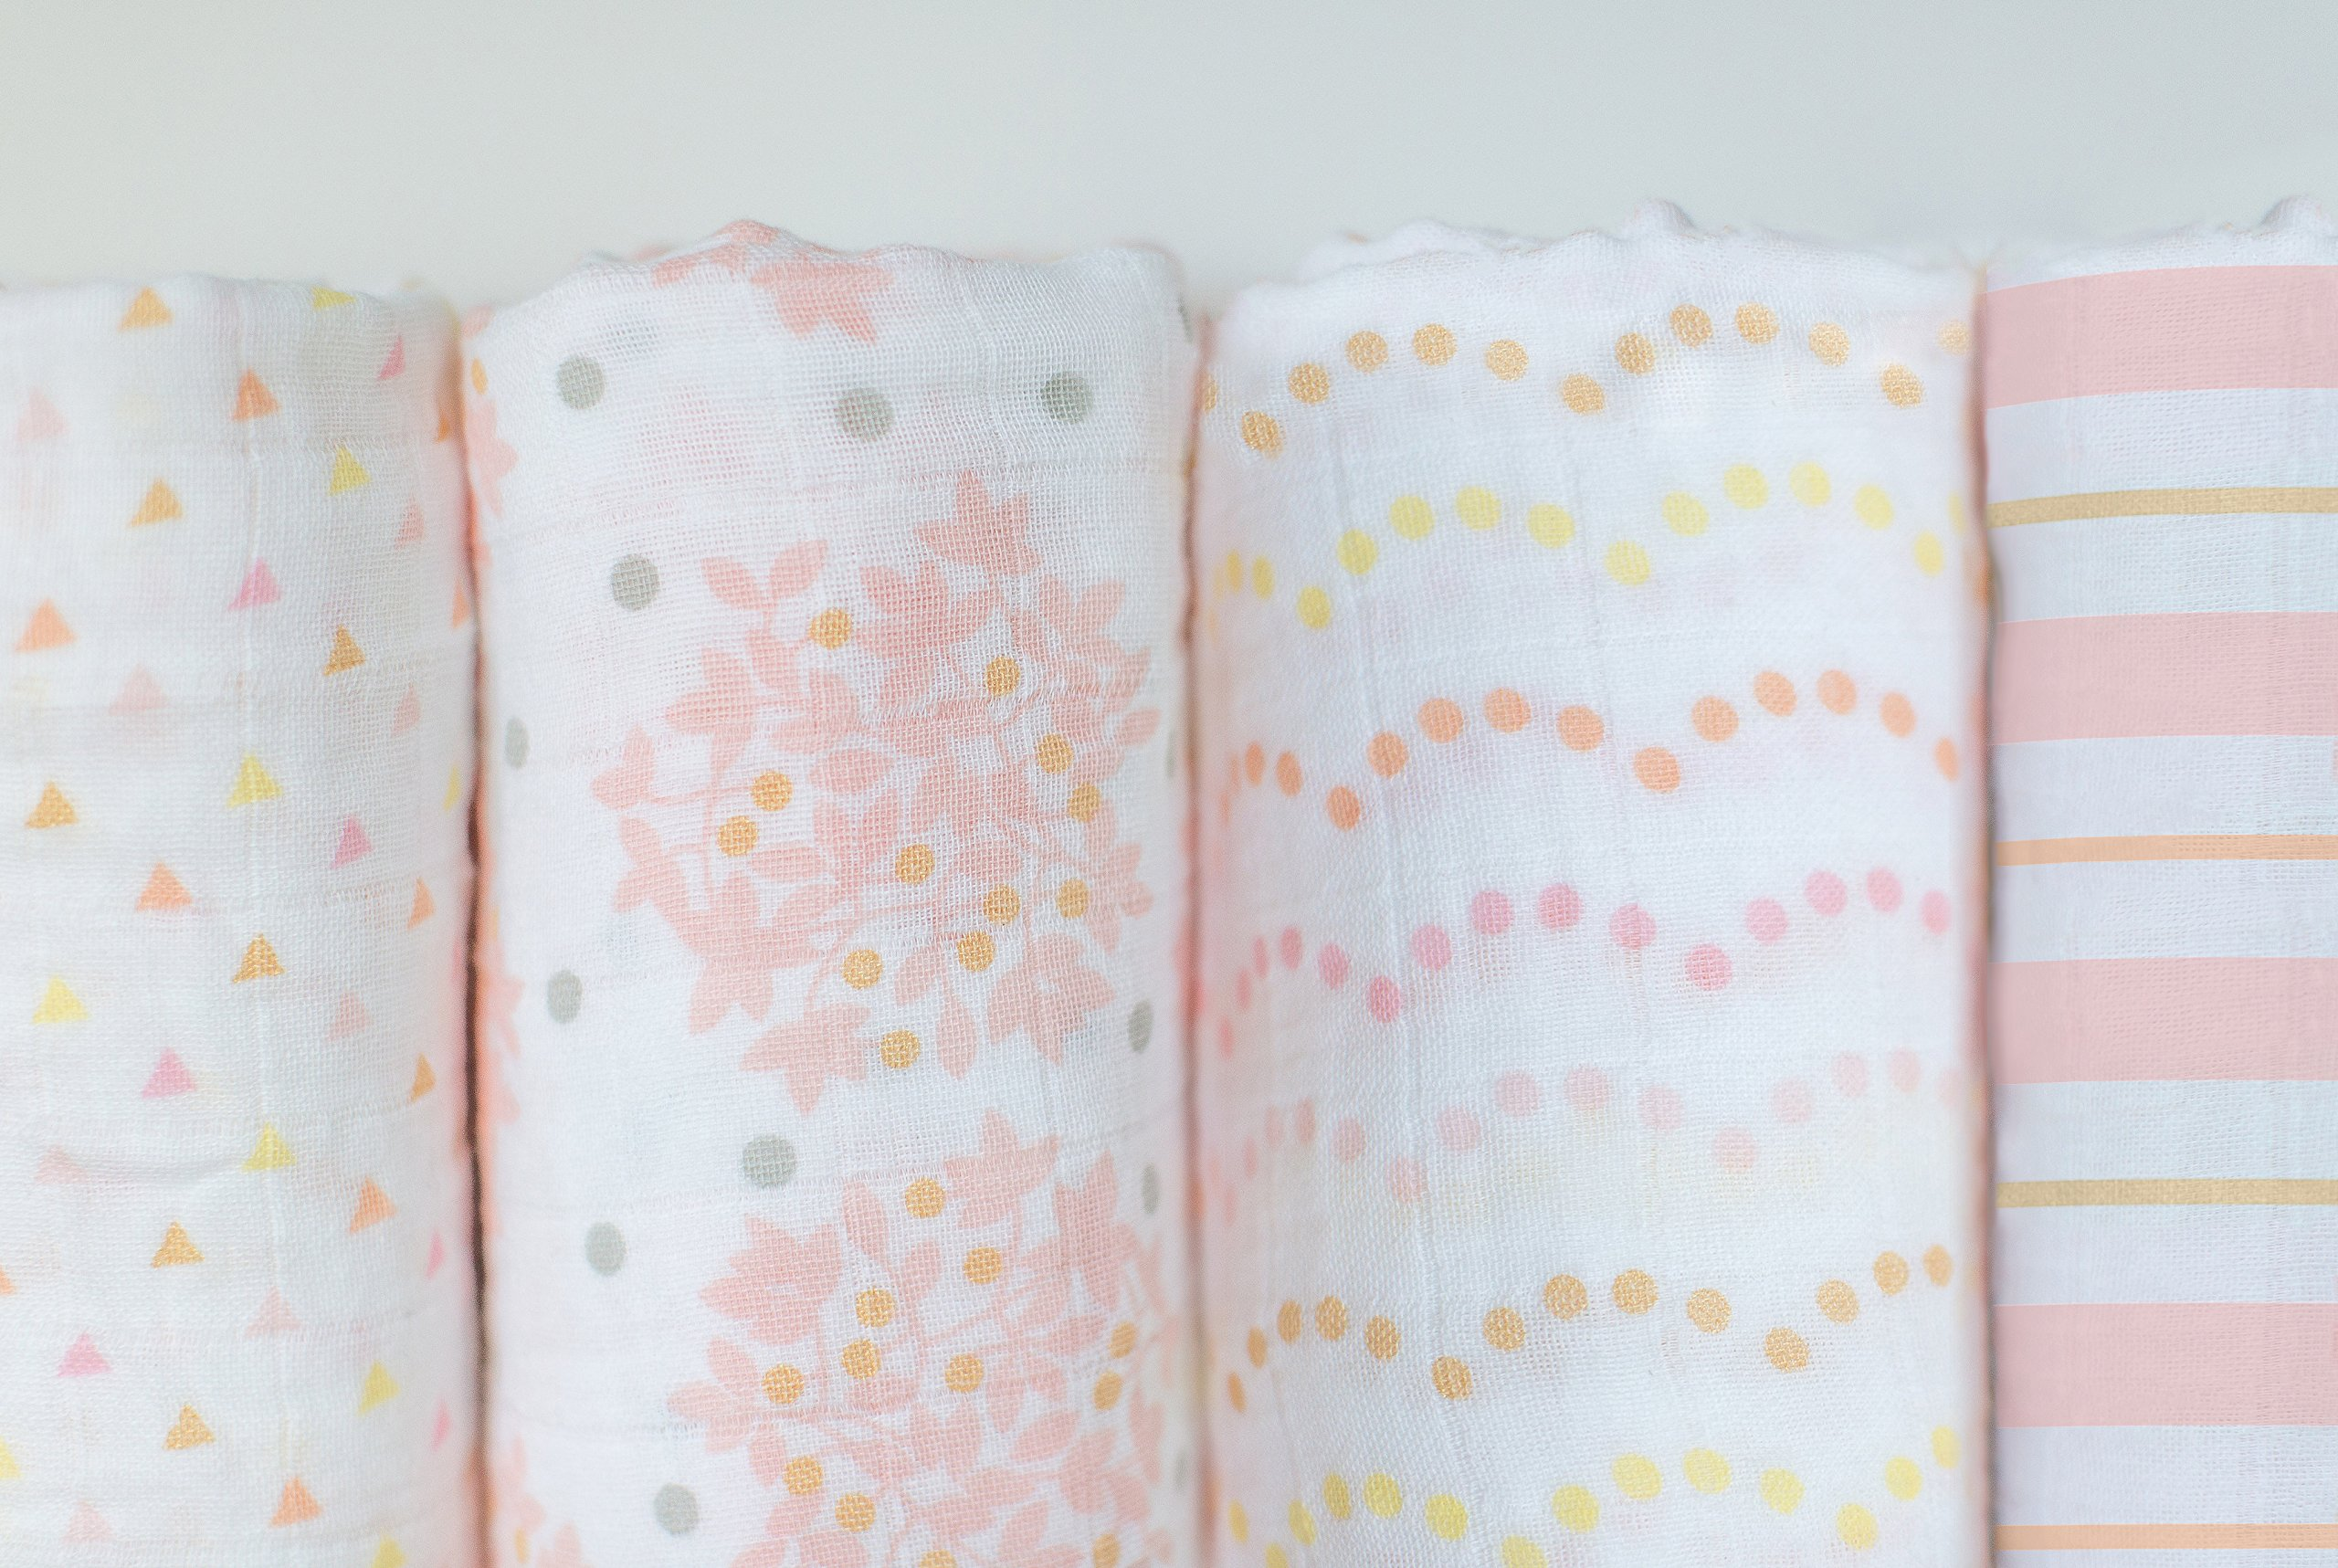 SwaddleDesigns Cotton Muslin Swaddle Blankets, Set of 4, Pink Heavenly Floral by SwaddleDesigns (Image #3)